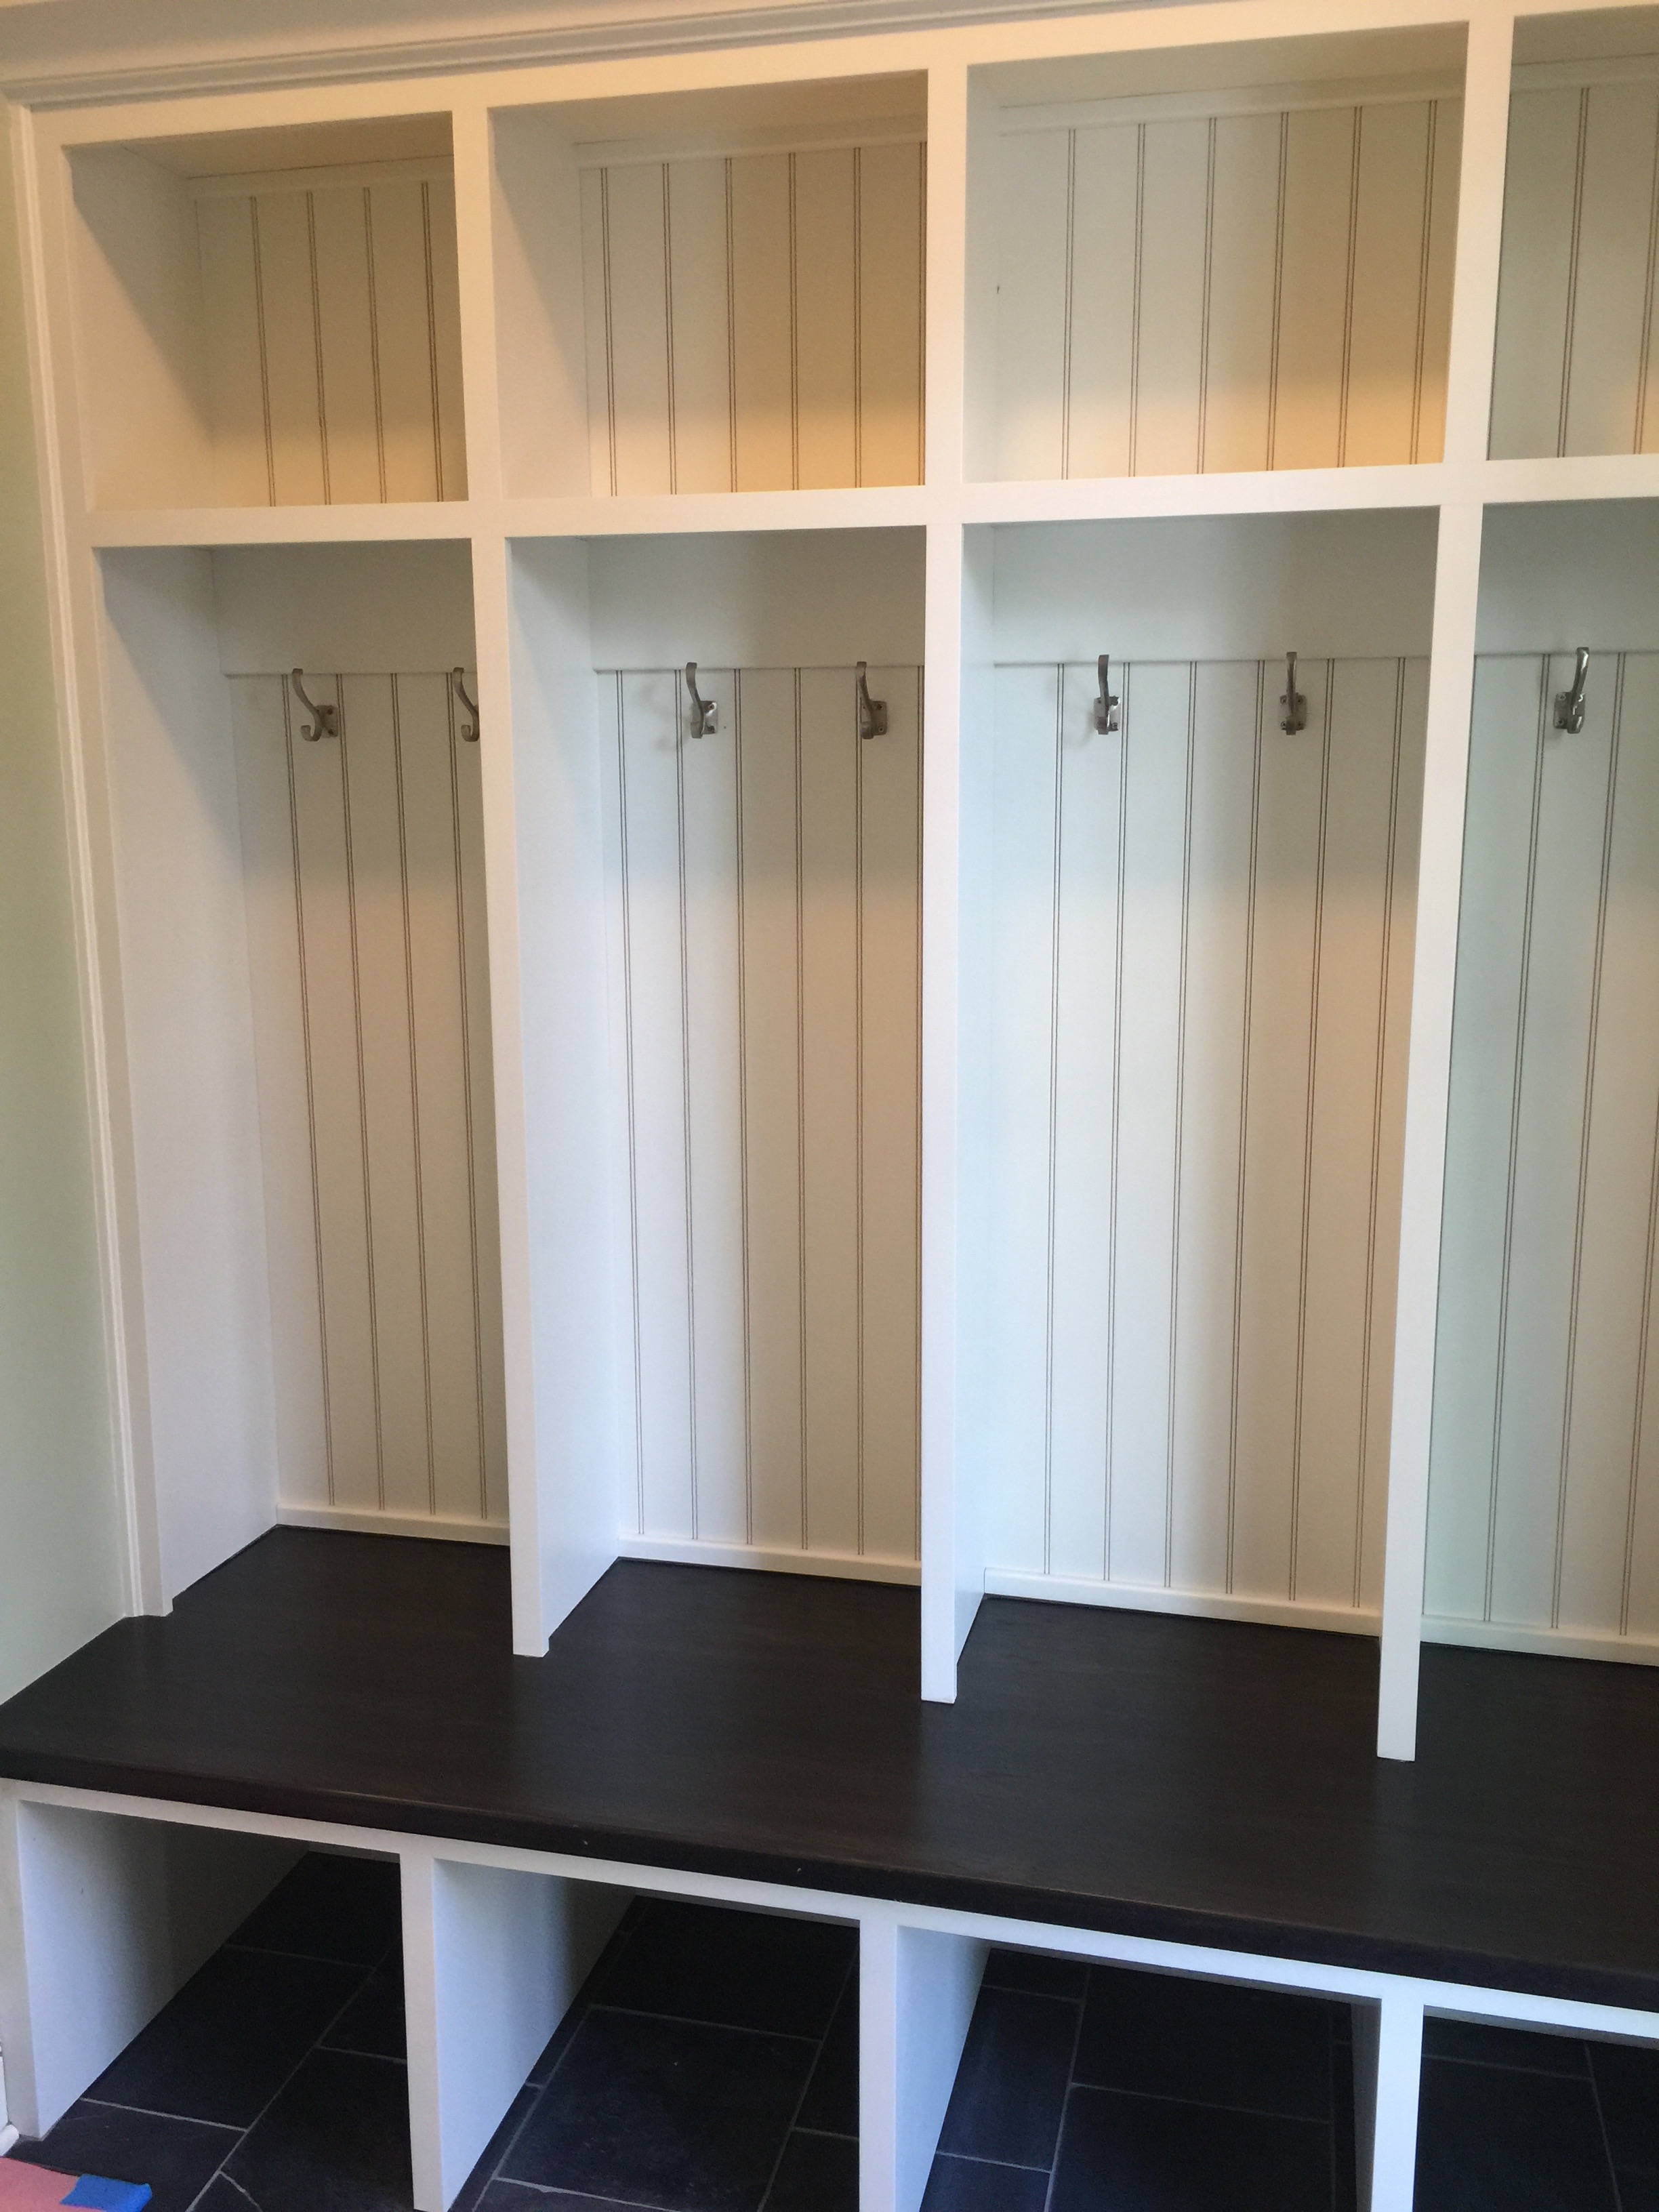 Your typical builder-grade, new construction mudroom.